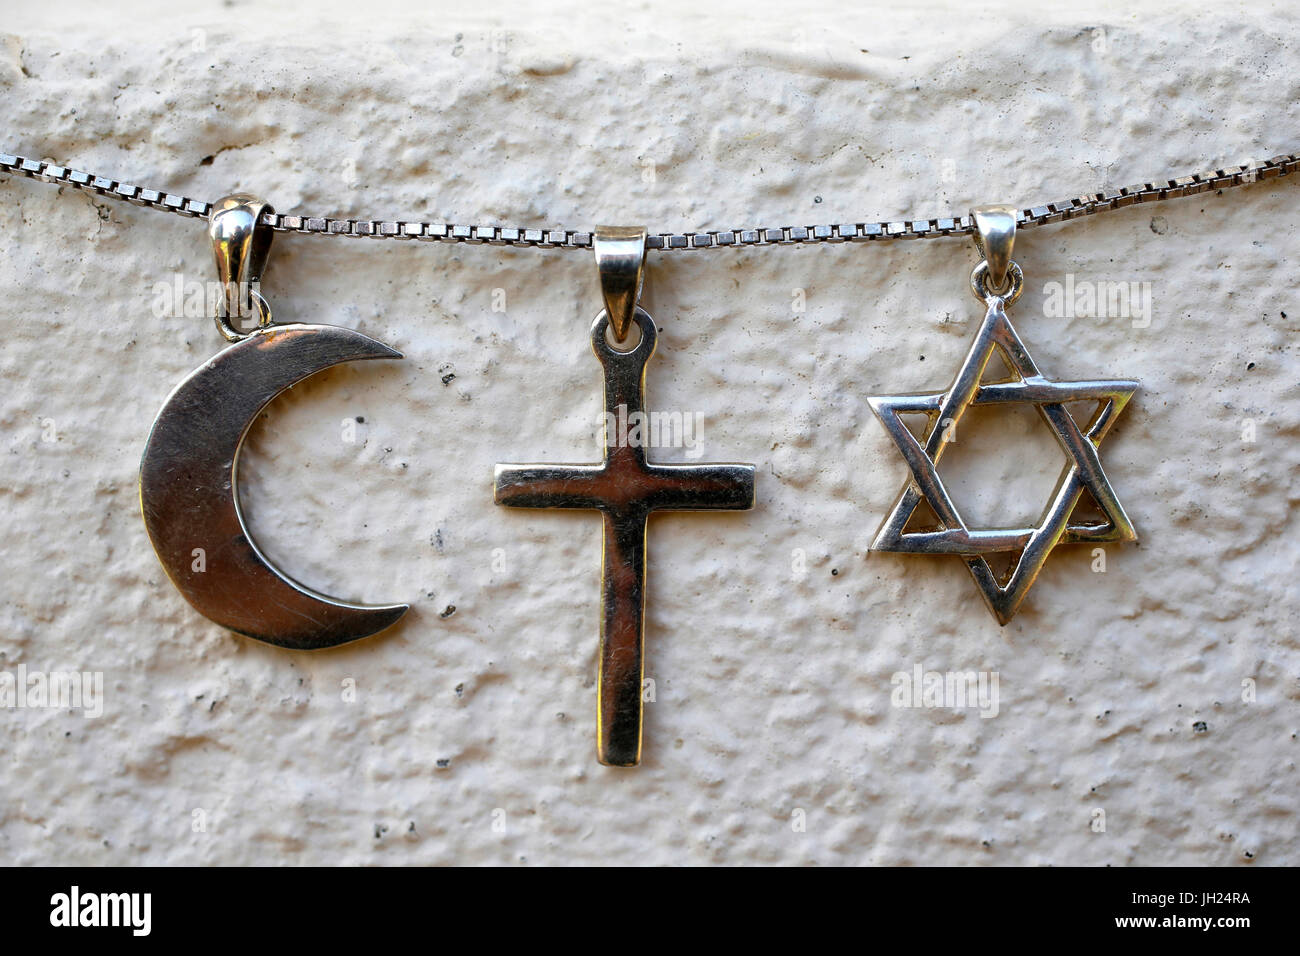 Symboles de l'islam, le christianisme et le judaïsme. Photo Stock